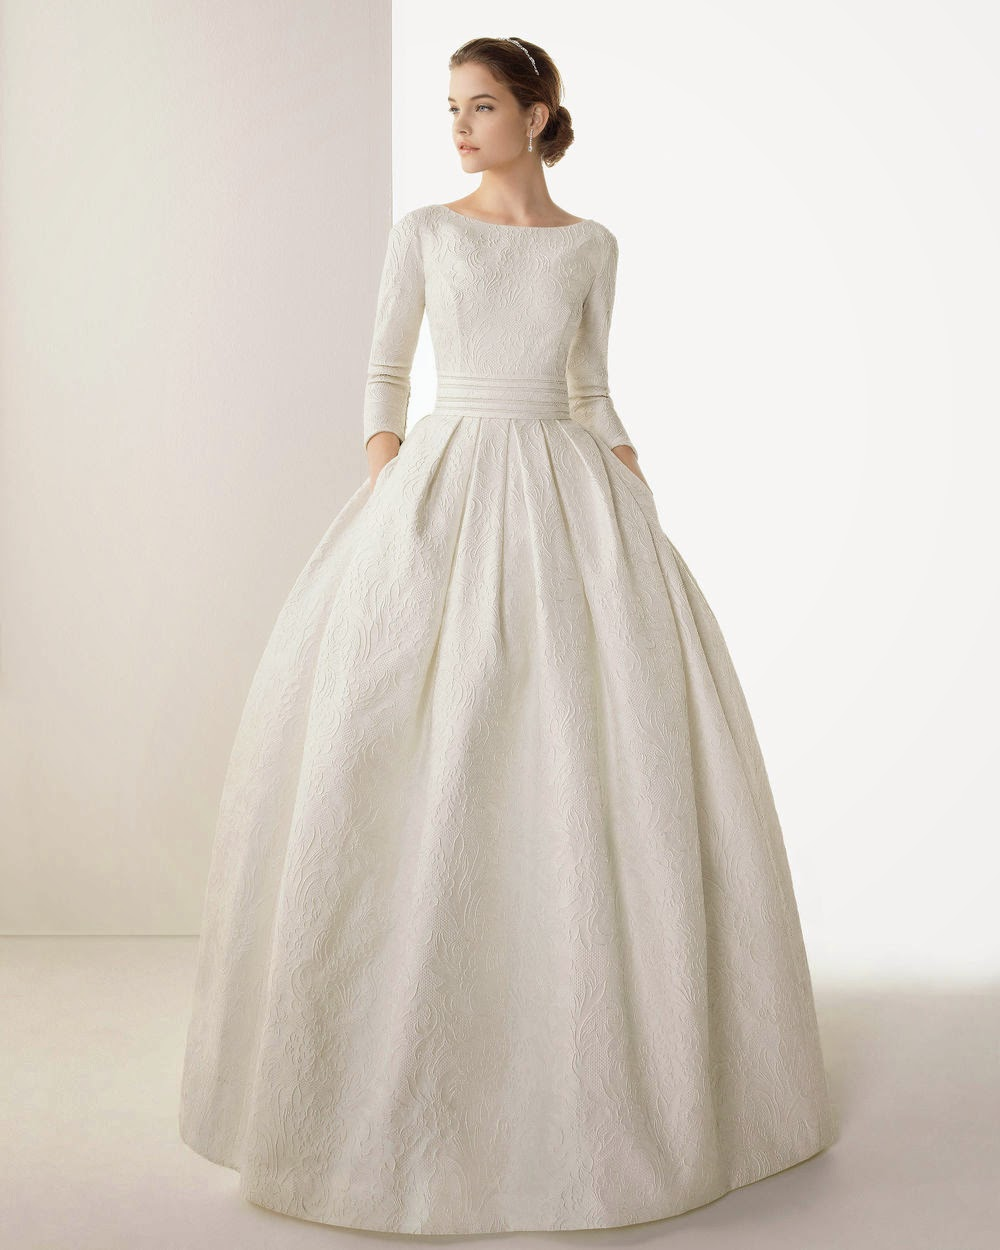 Long Sleeve Gowns For Weddings: Long Sleeve Wedding Dresses